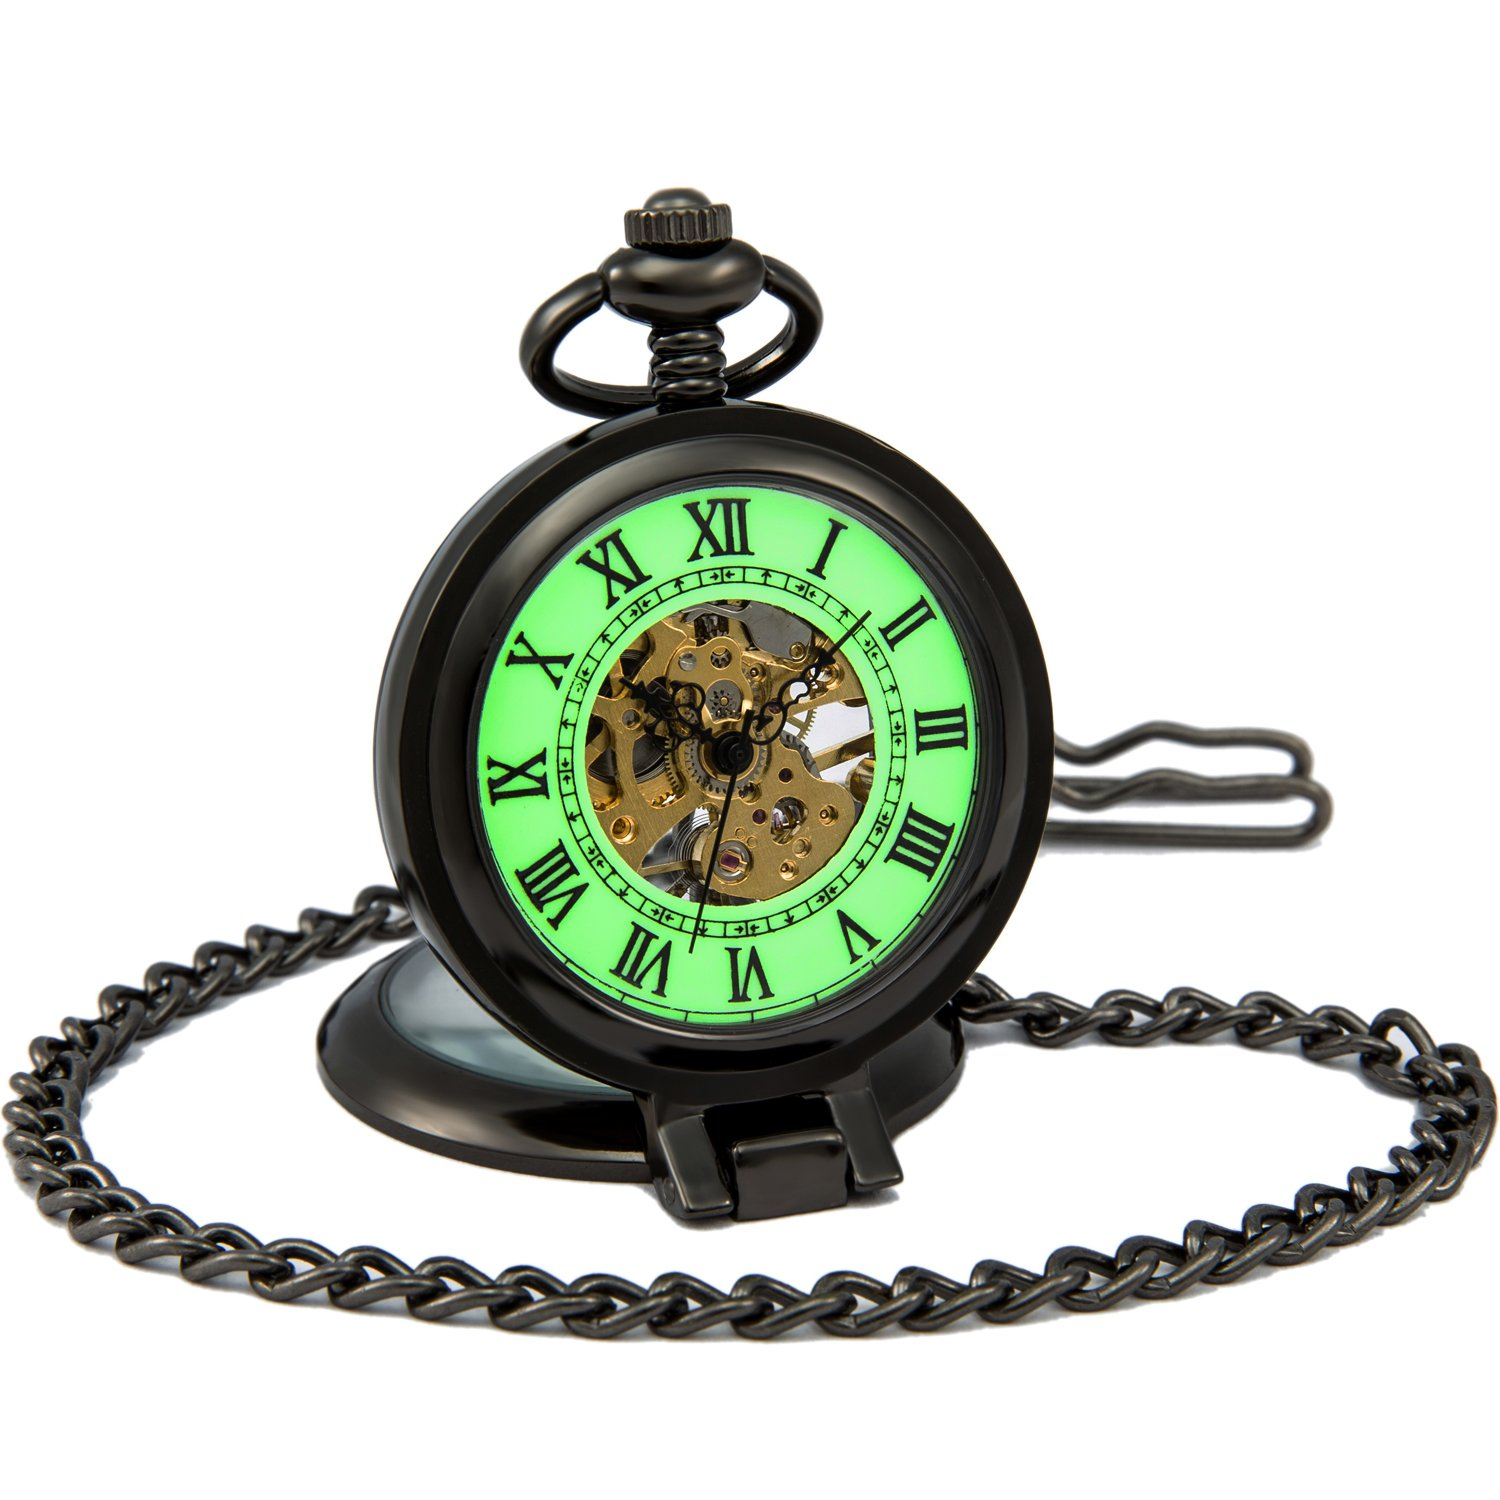 SEWOR Mens Luminous Dial Hand Wind Mechanical Pocket Watch with Brand Leather Gift Box (Stand Up Black)